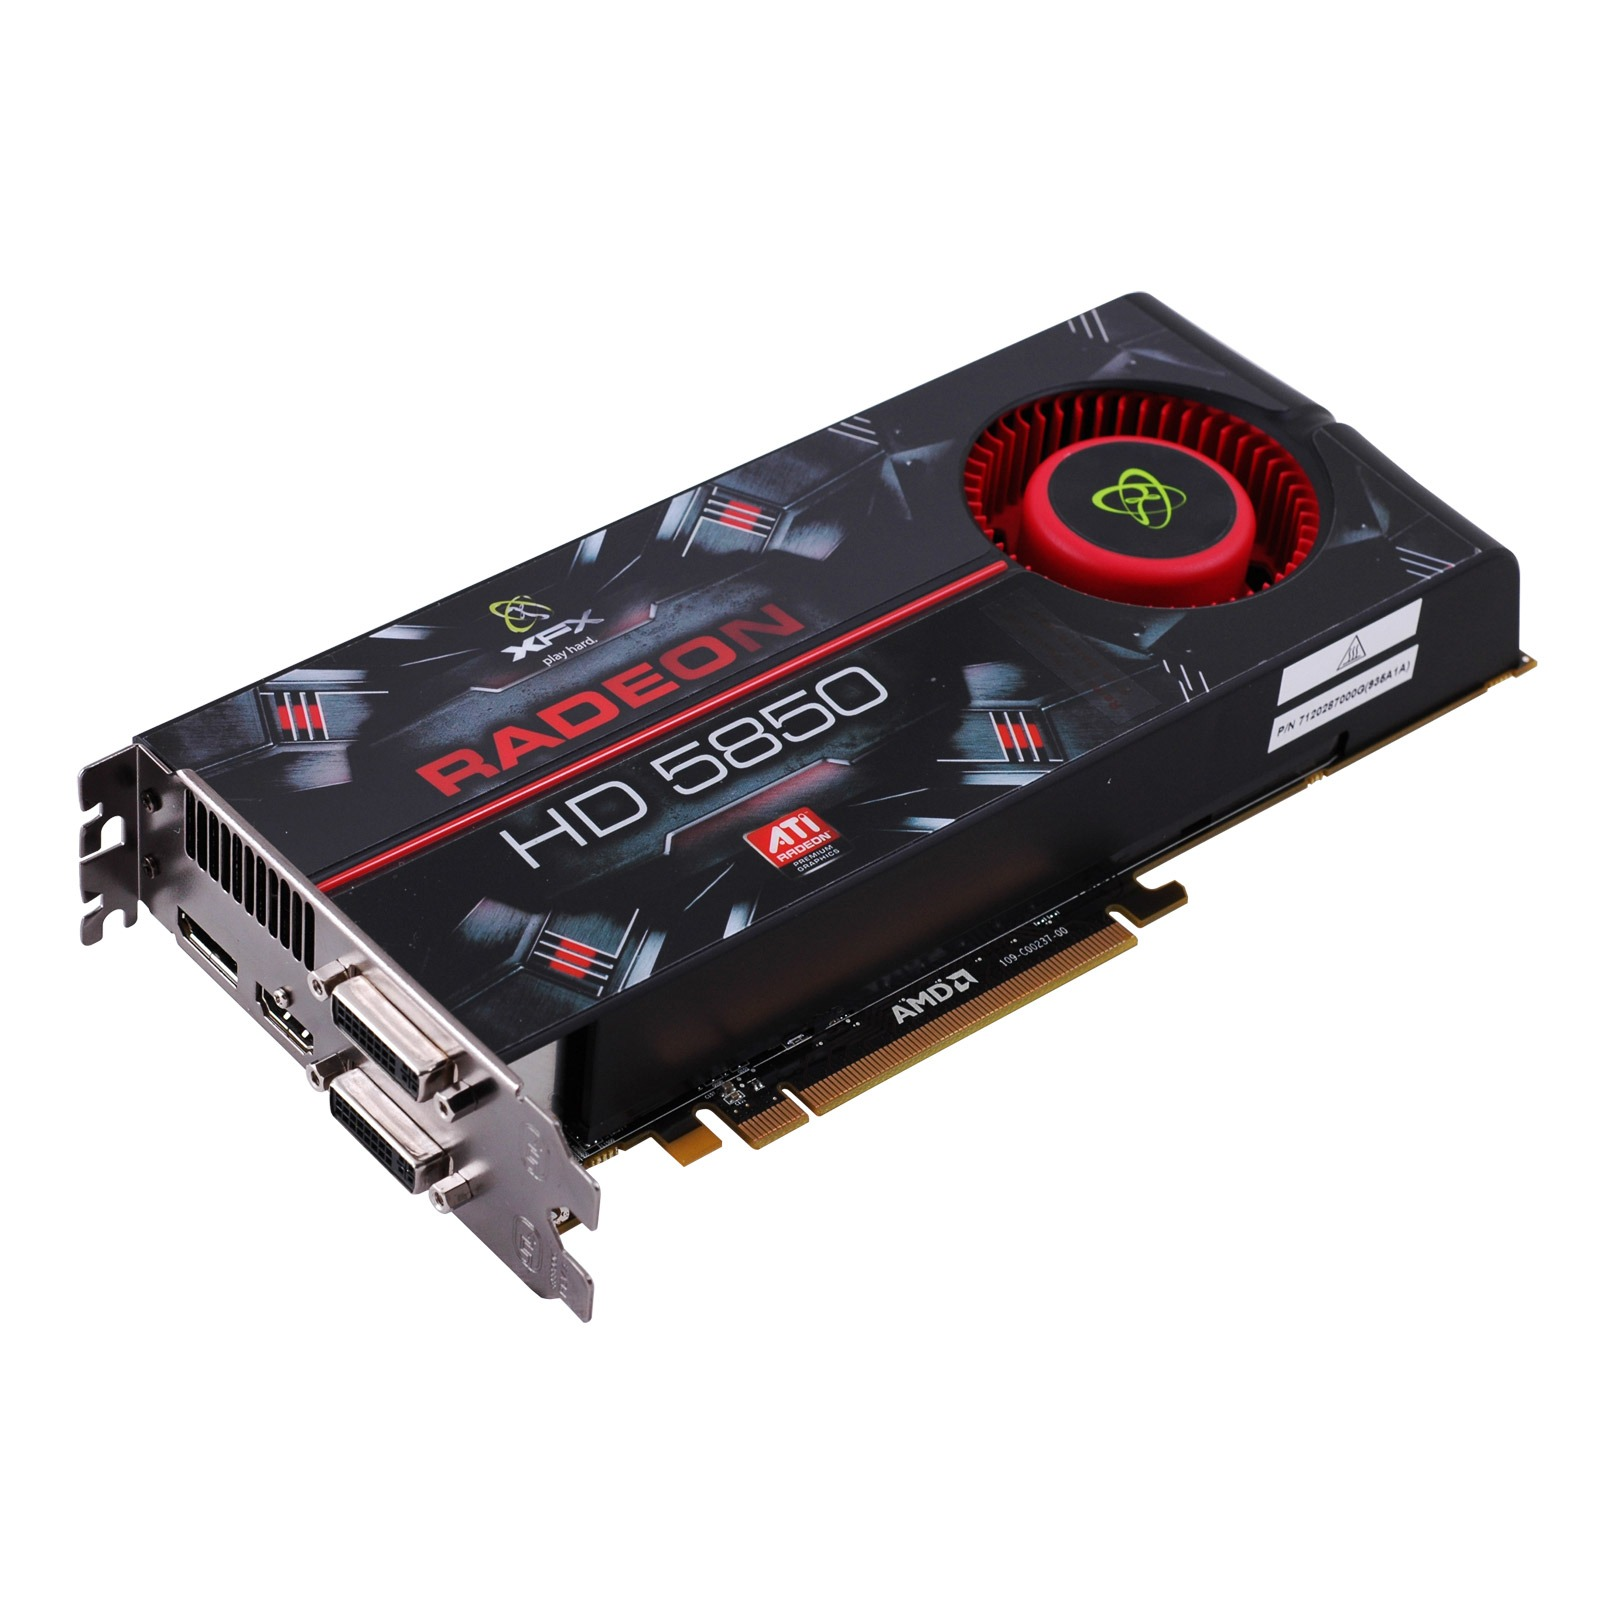 "Carte graphique XFX ATI Radeon HD 5850 1024 MB + Jeu ""Assassin's Creed"" XFX ATI Radeon HD 5850 1024 MB - 1 Go HDMI/Dual DVI/DisplayPort - PCI Express (ATI Radeon HD 5850) + Jeu ""Assassin's Creed"""